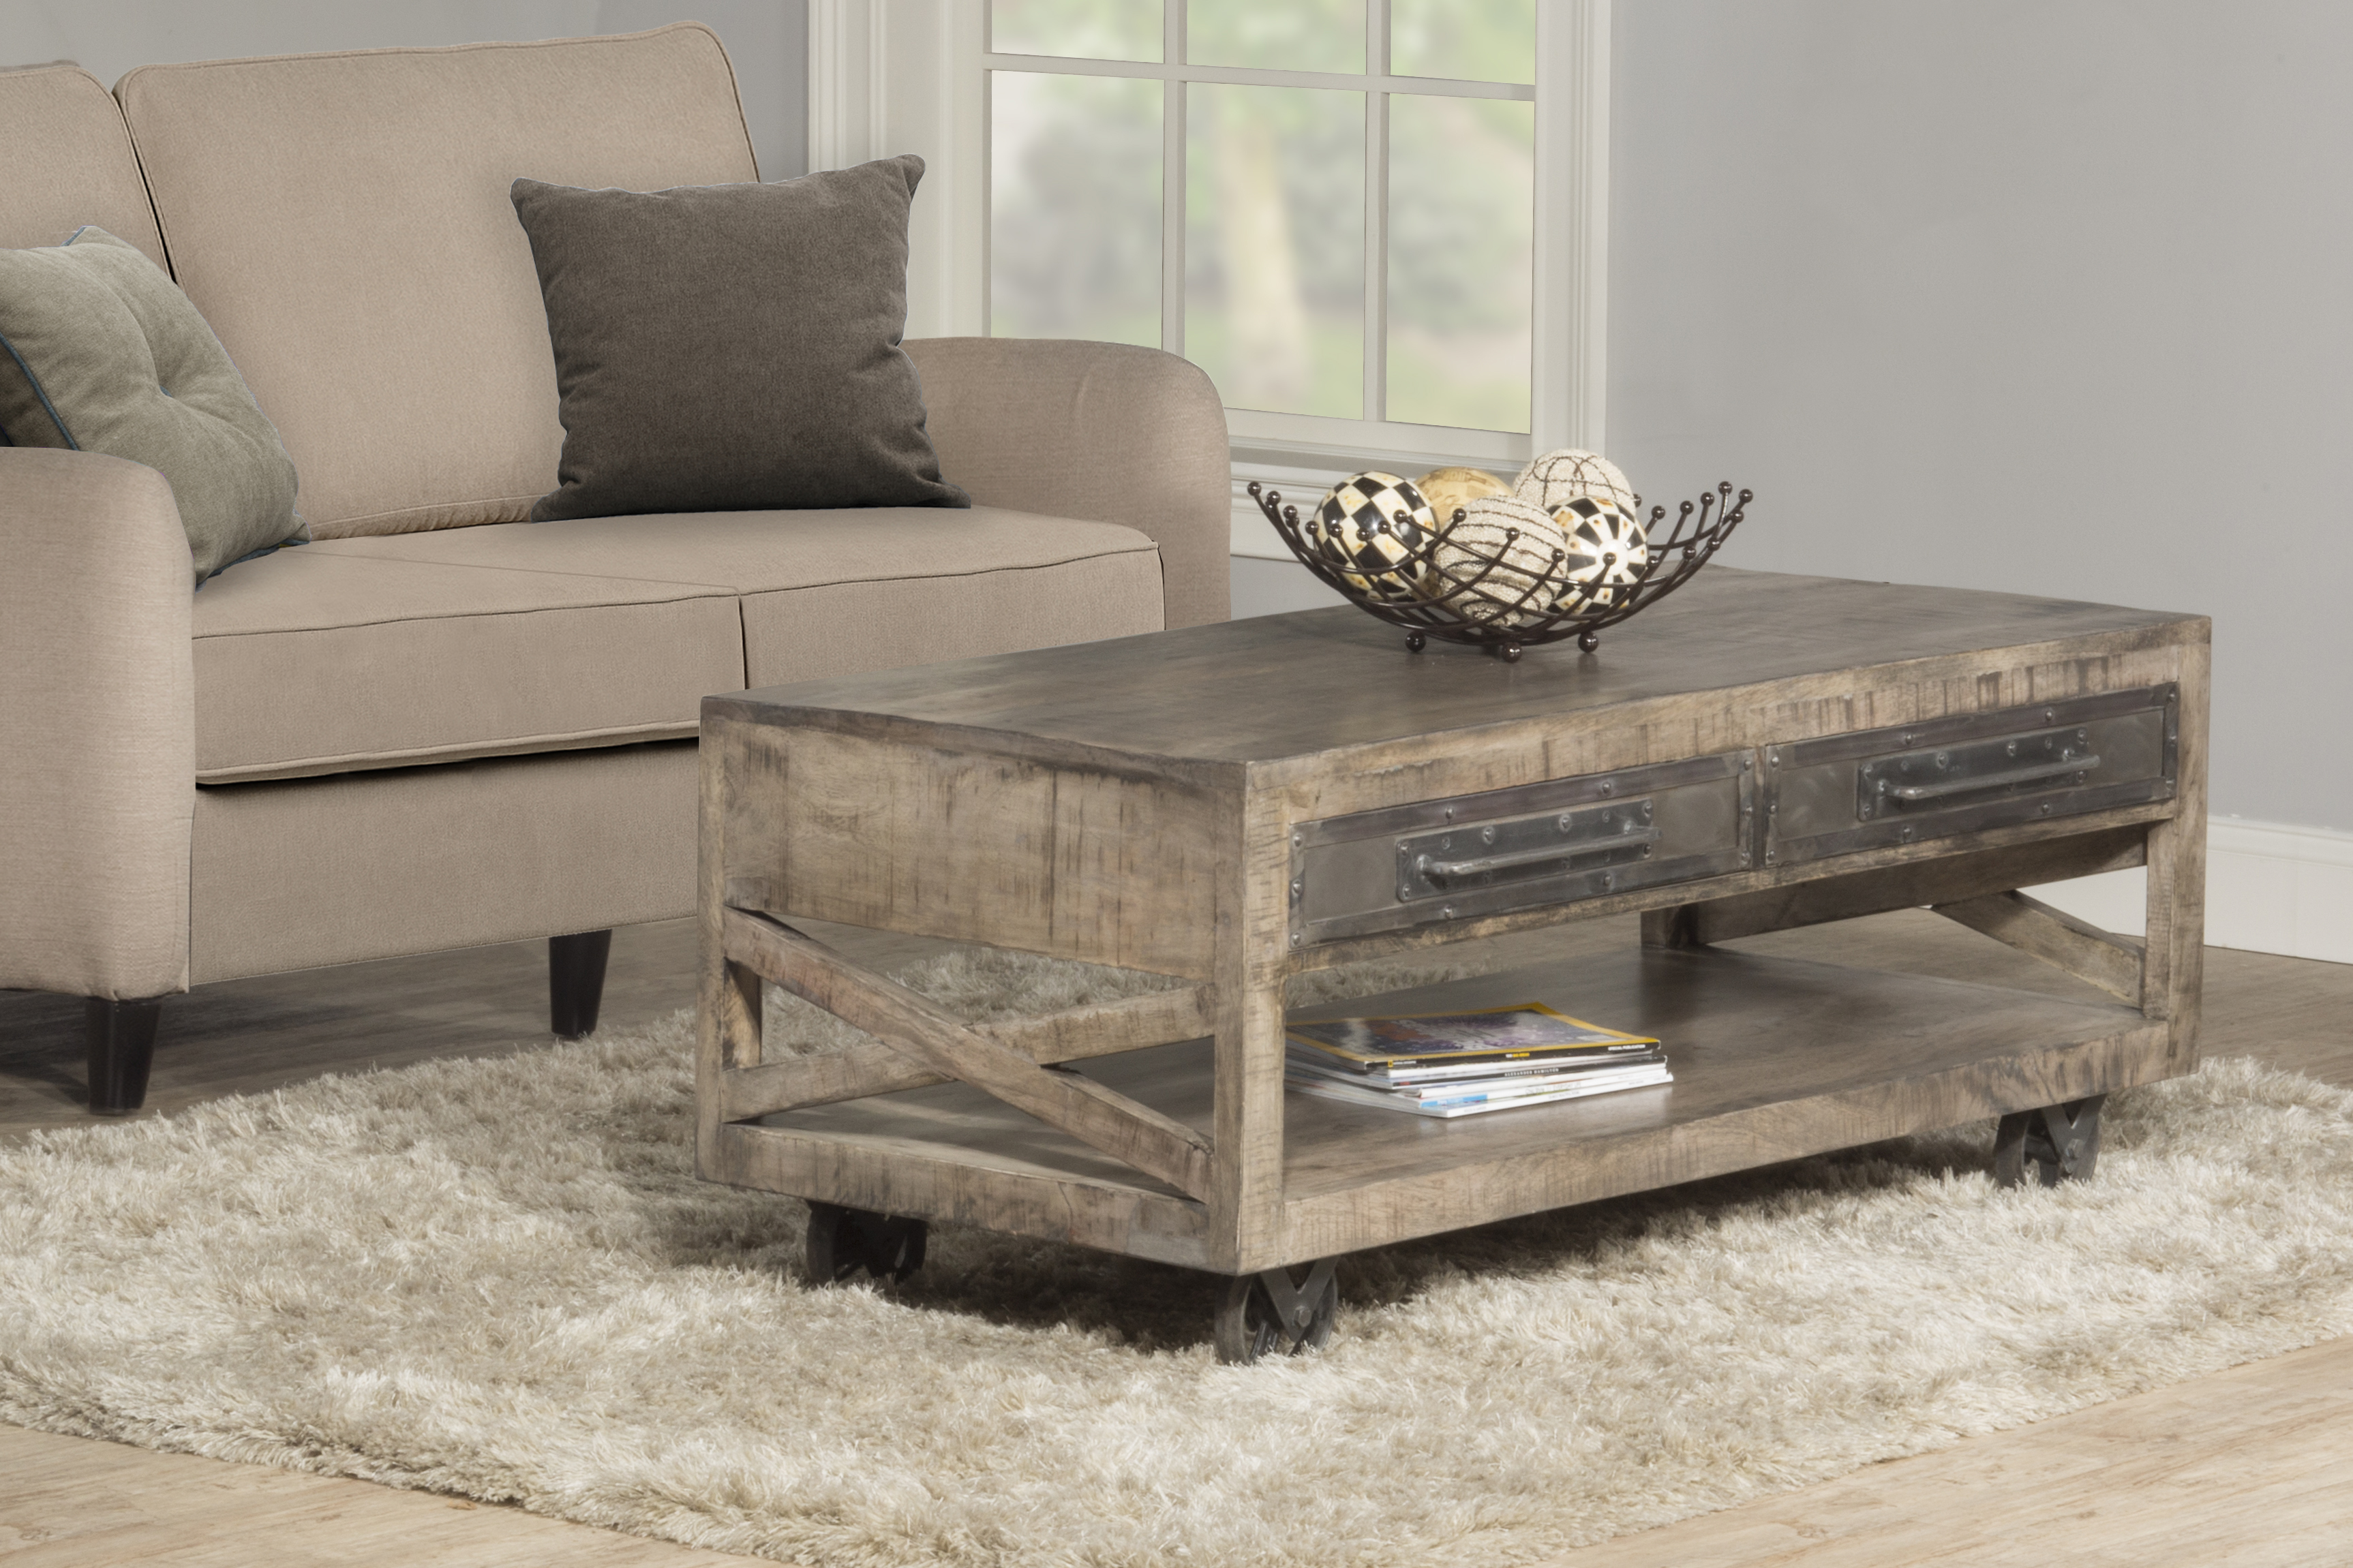 Bridgewater Coffee Table with Casters Brushed Tan Wood